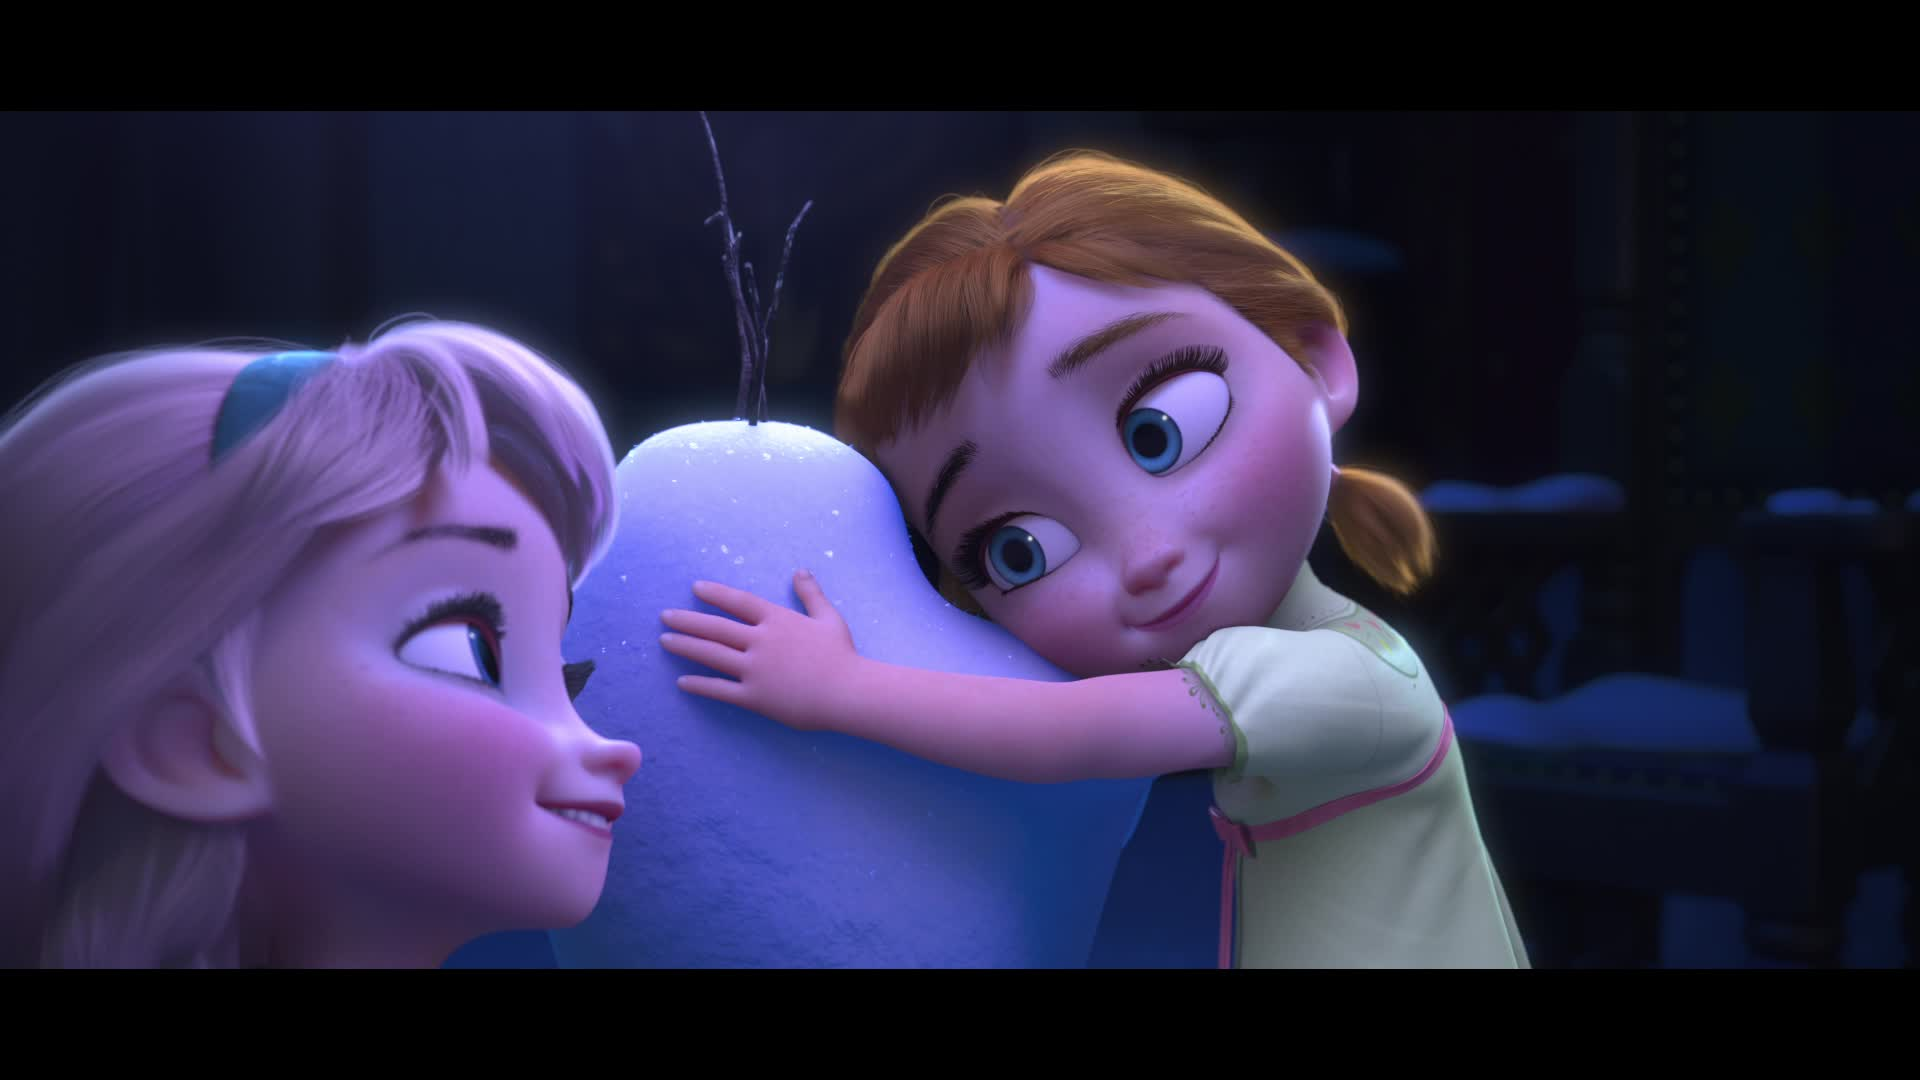 Elsa And Anna Are Two Sister Princesses Was Born With Magical Powers That Allow Her To Create Snow In Thin Air One Day While The Playing